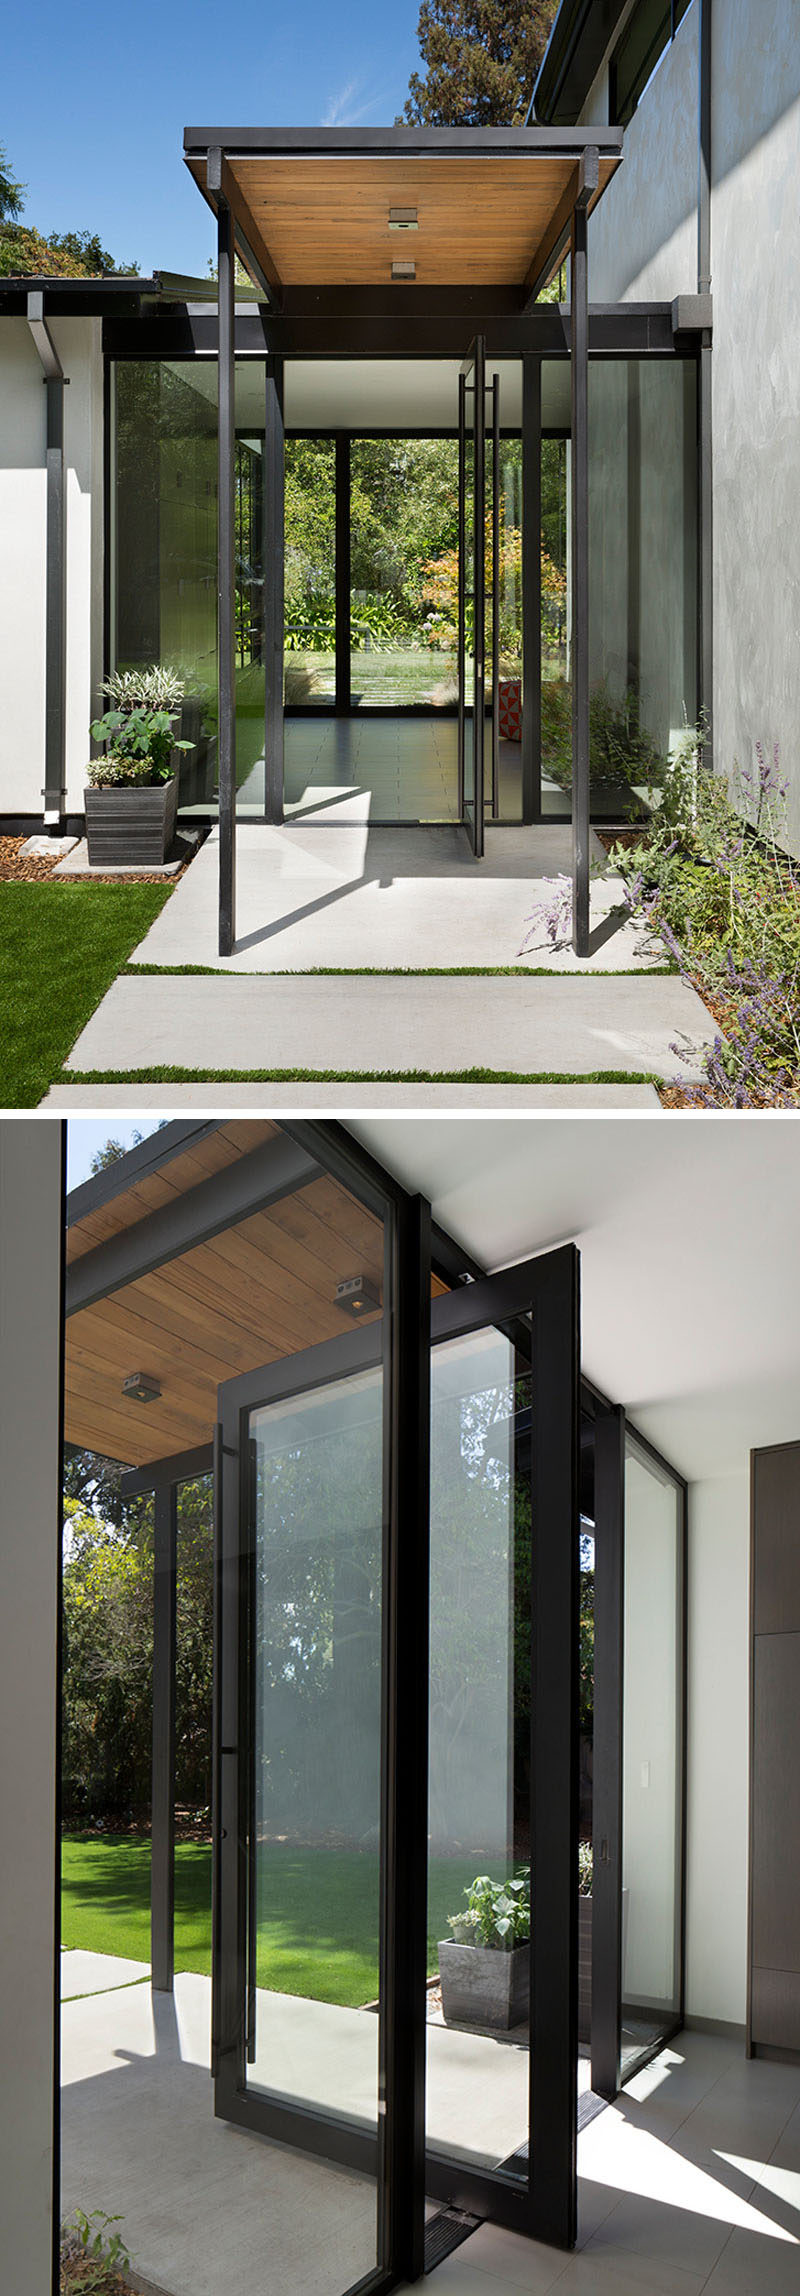 Welcoming guests to this modern house is a pivoting glass front door with black frames and hardware. #PivotingDoor #GlassFrontDoor #FrontDoor